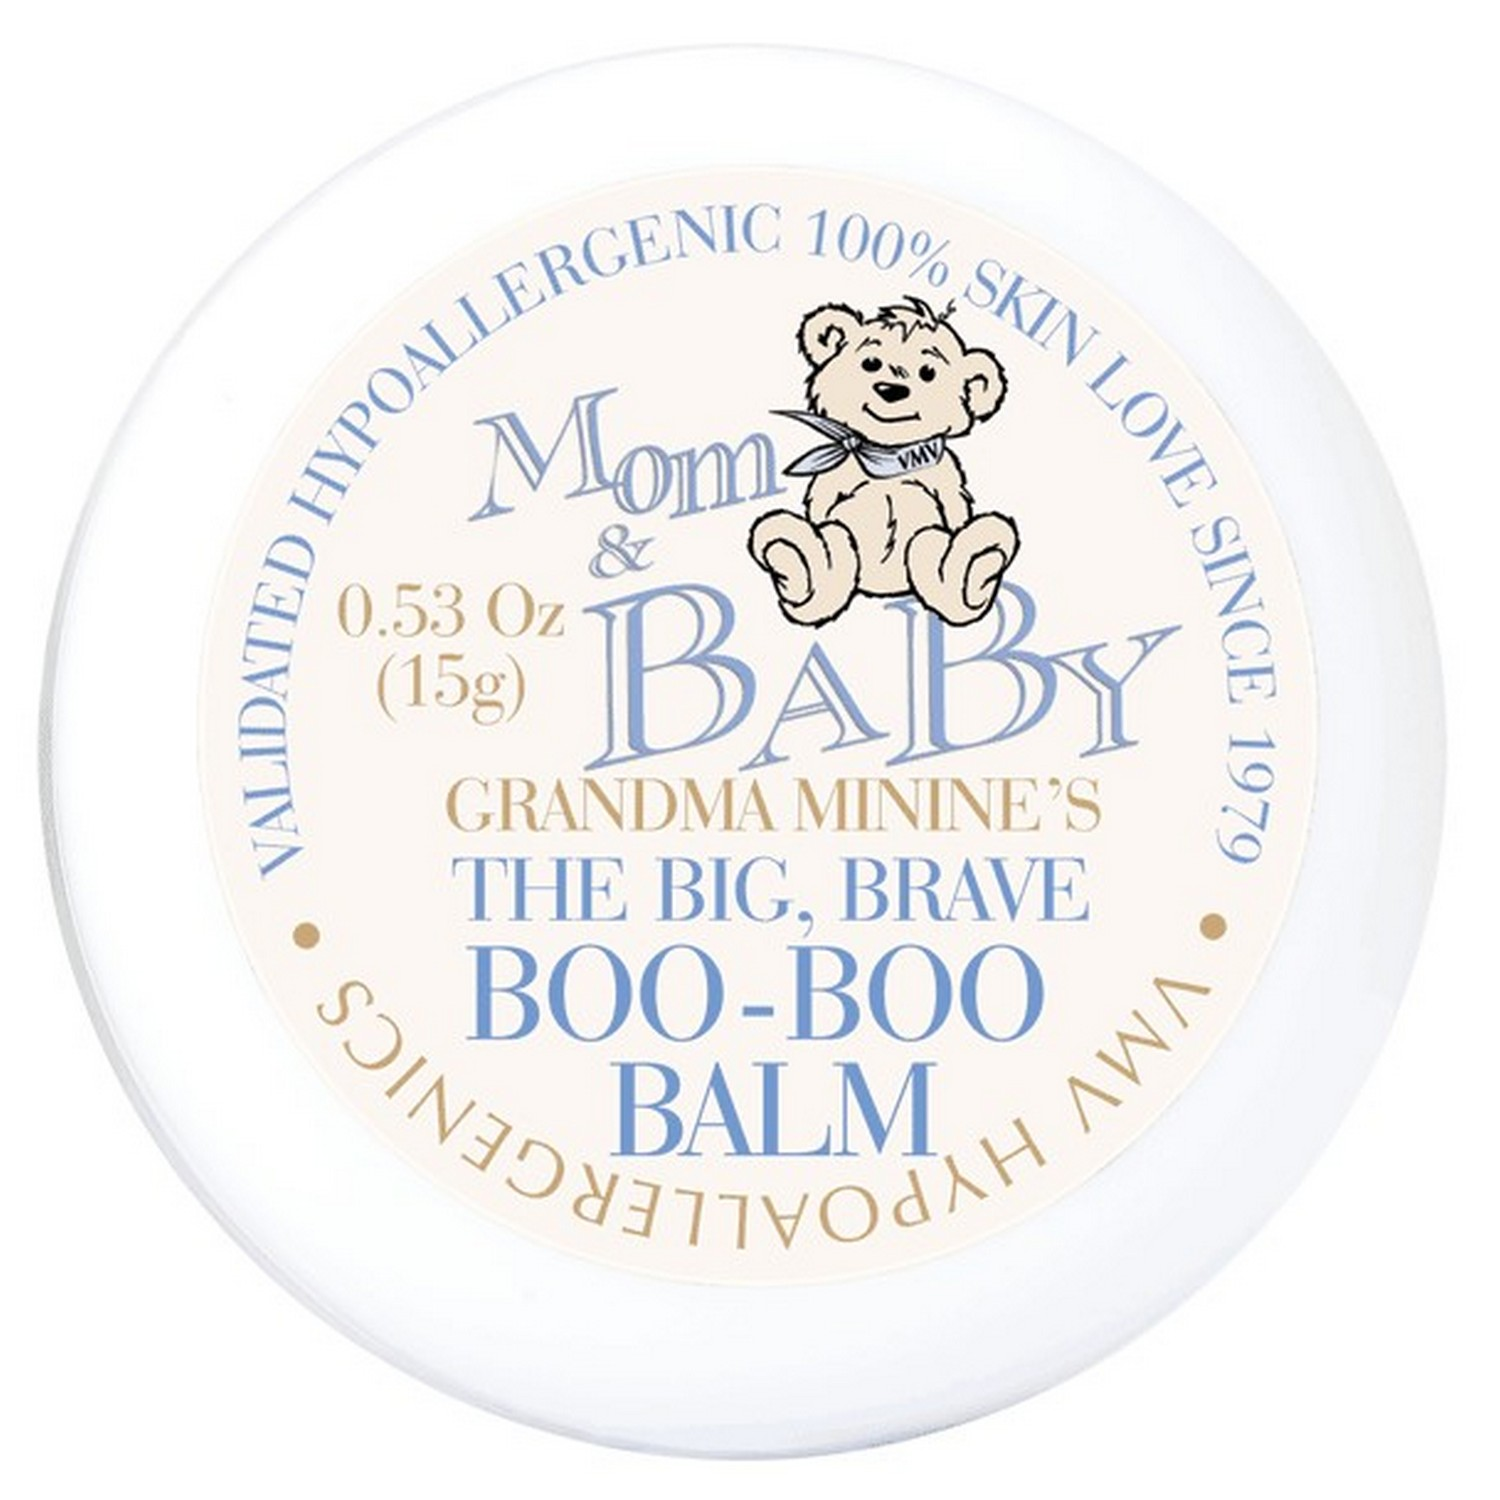 """""""VMV Hypoallergenics Grandma Minnie's The Big, Brave Boo-Boo Balm is a best-selling, multi-functional formula that quickly works to soothe and heal the skin."""""""